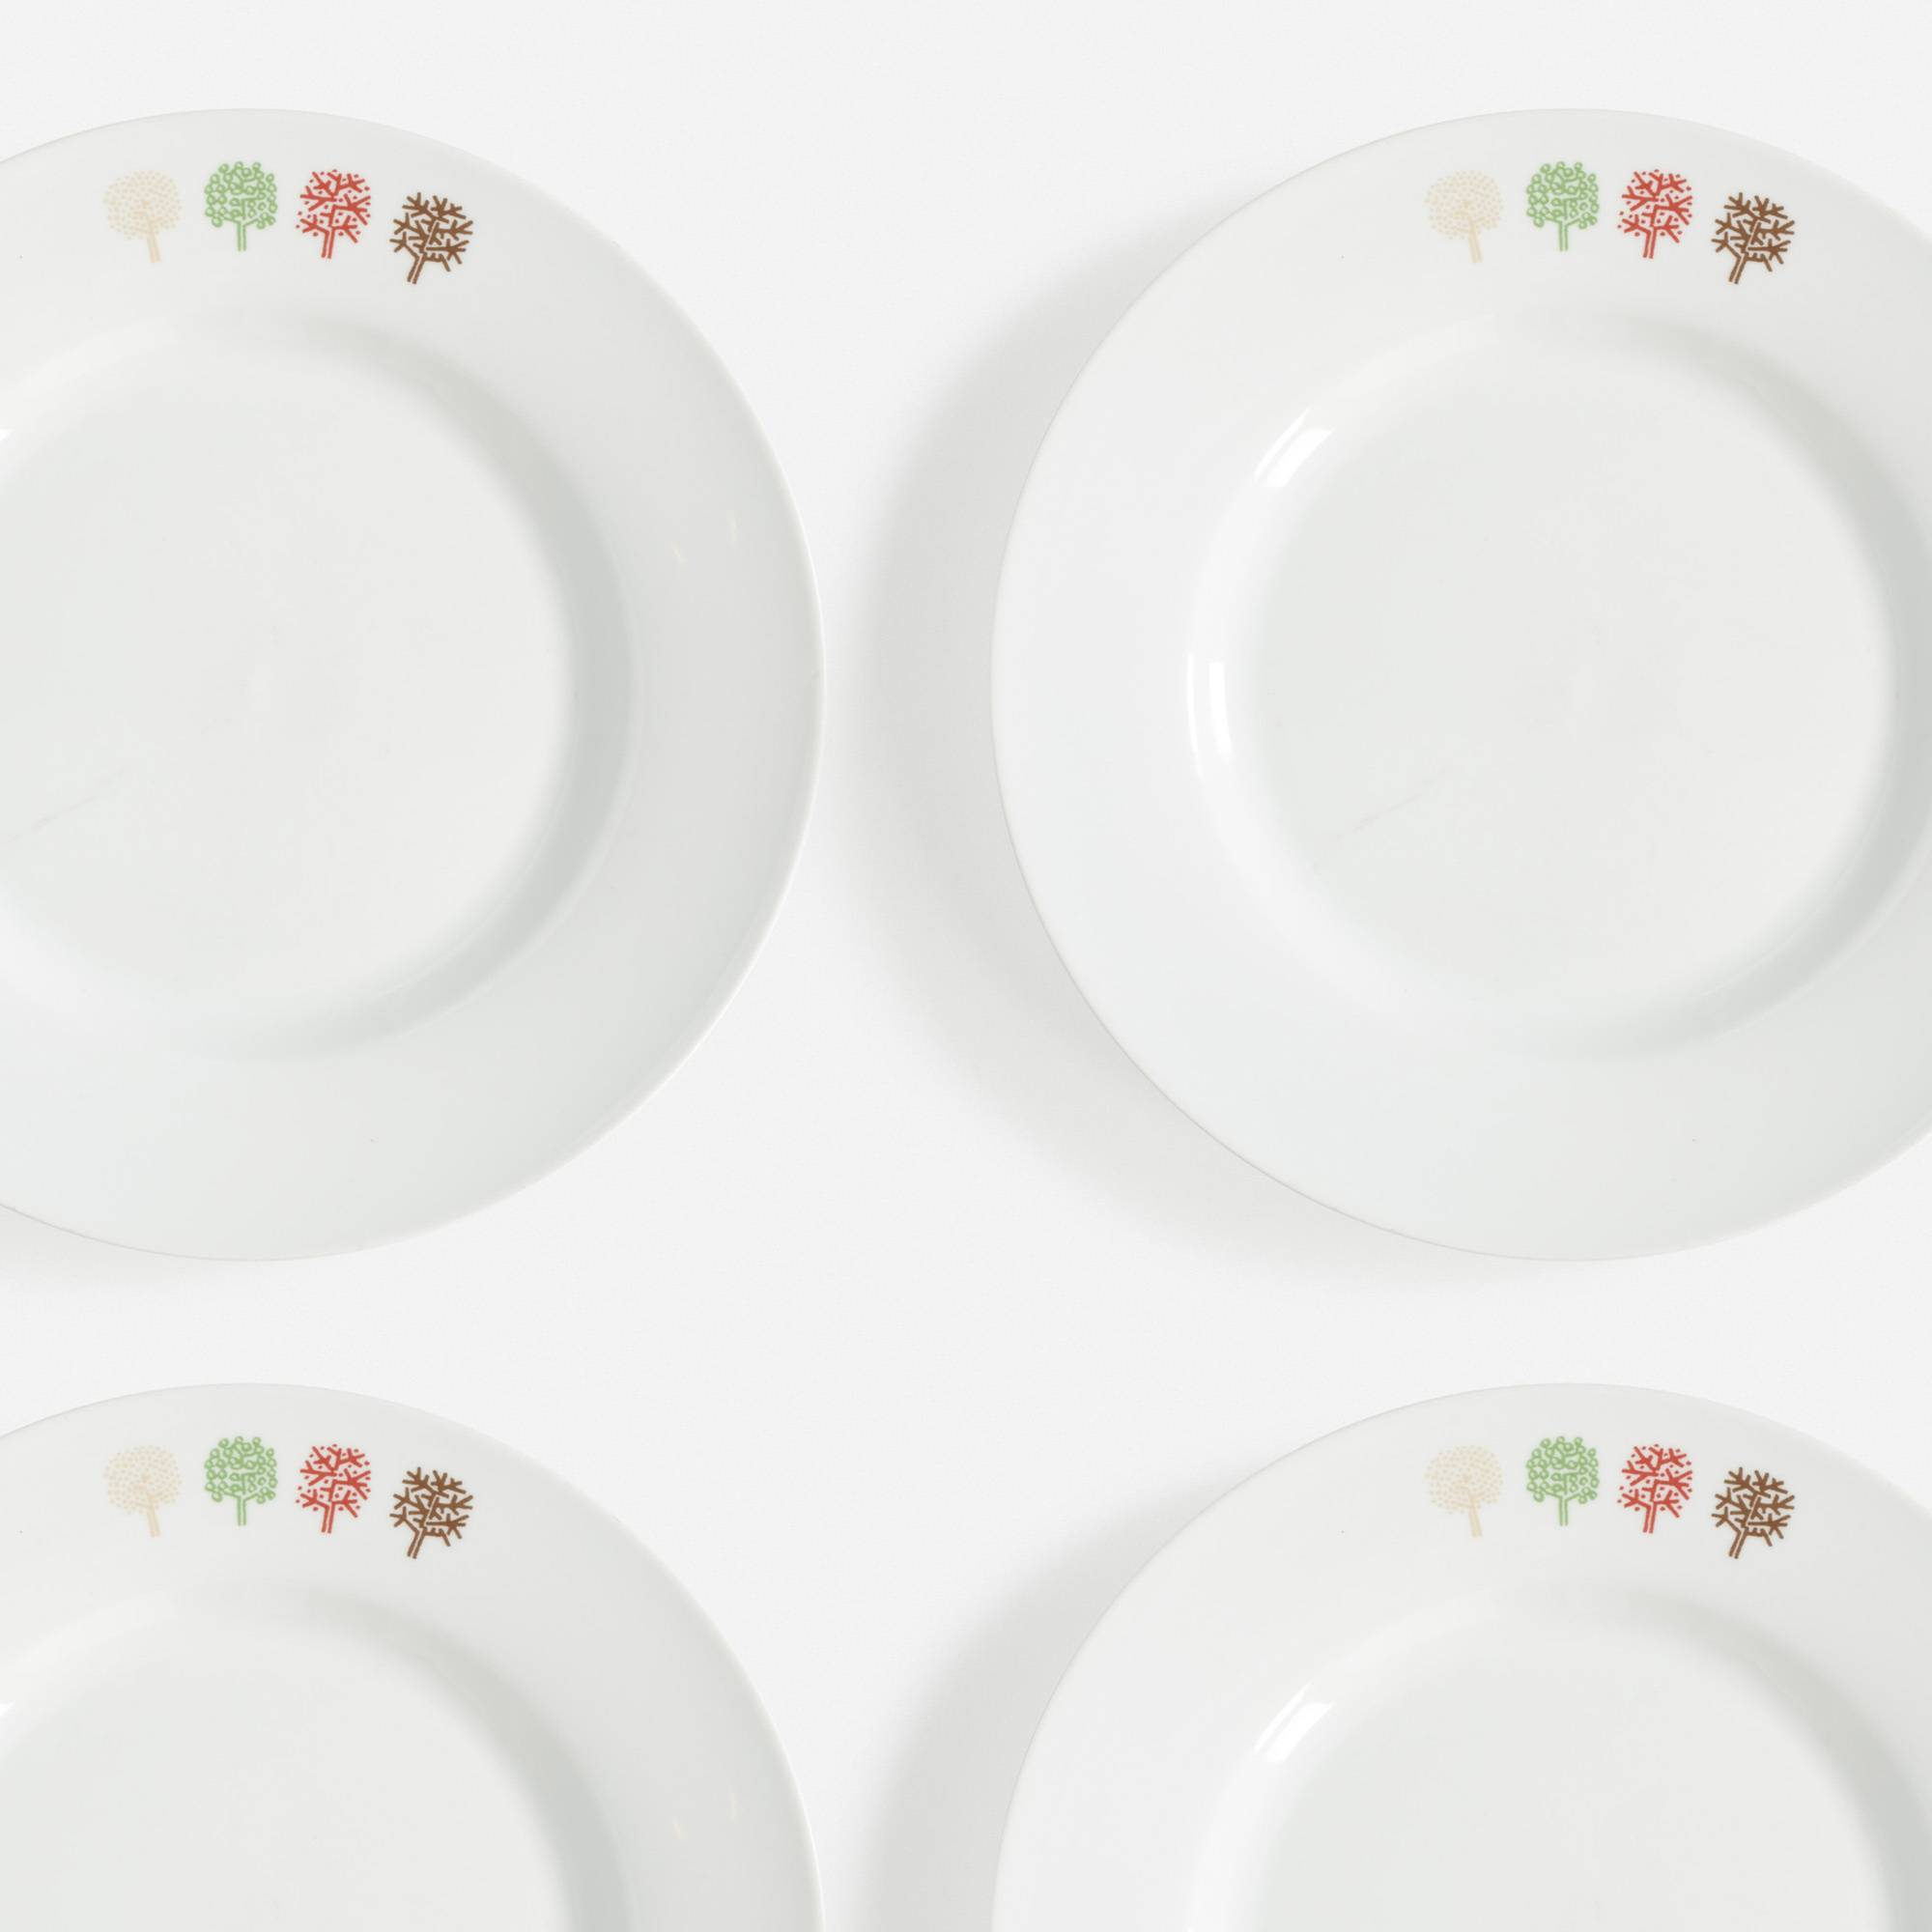 602:  / Four Seasons plates, set of twelve (1 of 1)